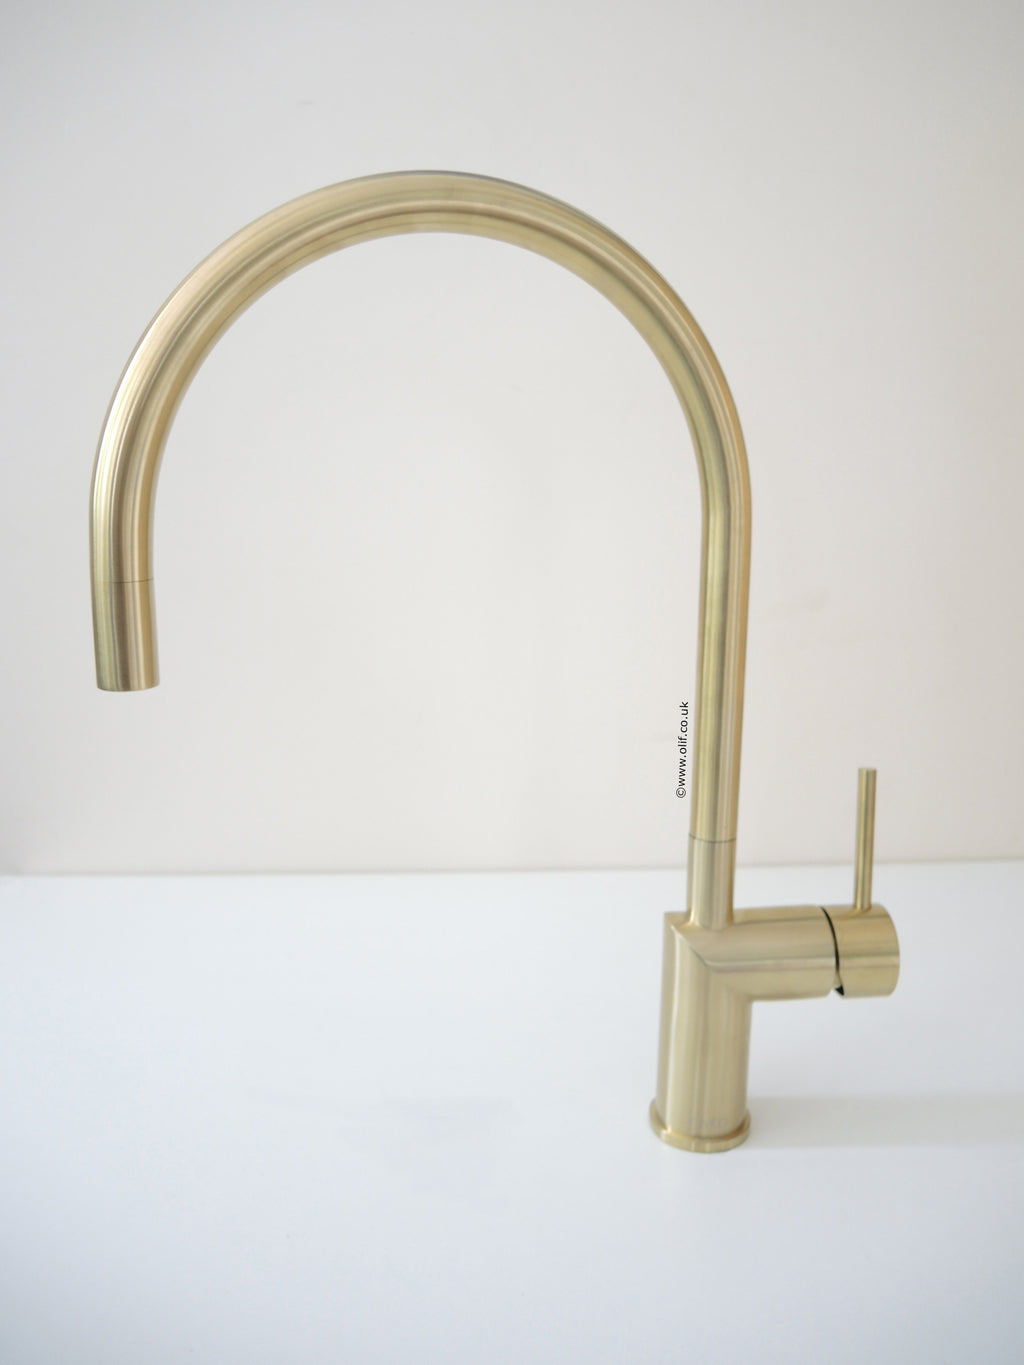 Nivito RH 140 Brushed Brass/Gold, kitchen mixer tap - Factory Seconds (40% Discount) Tap B